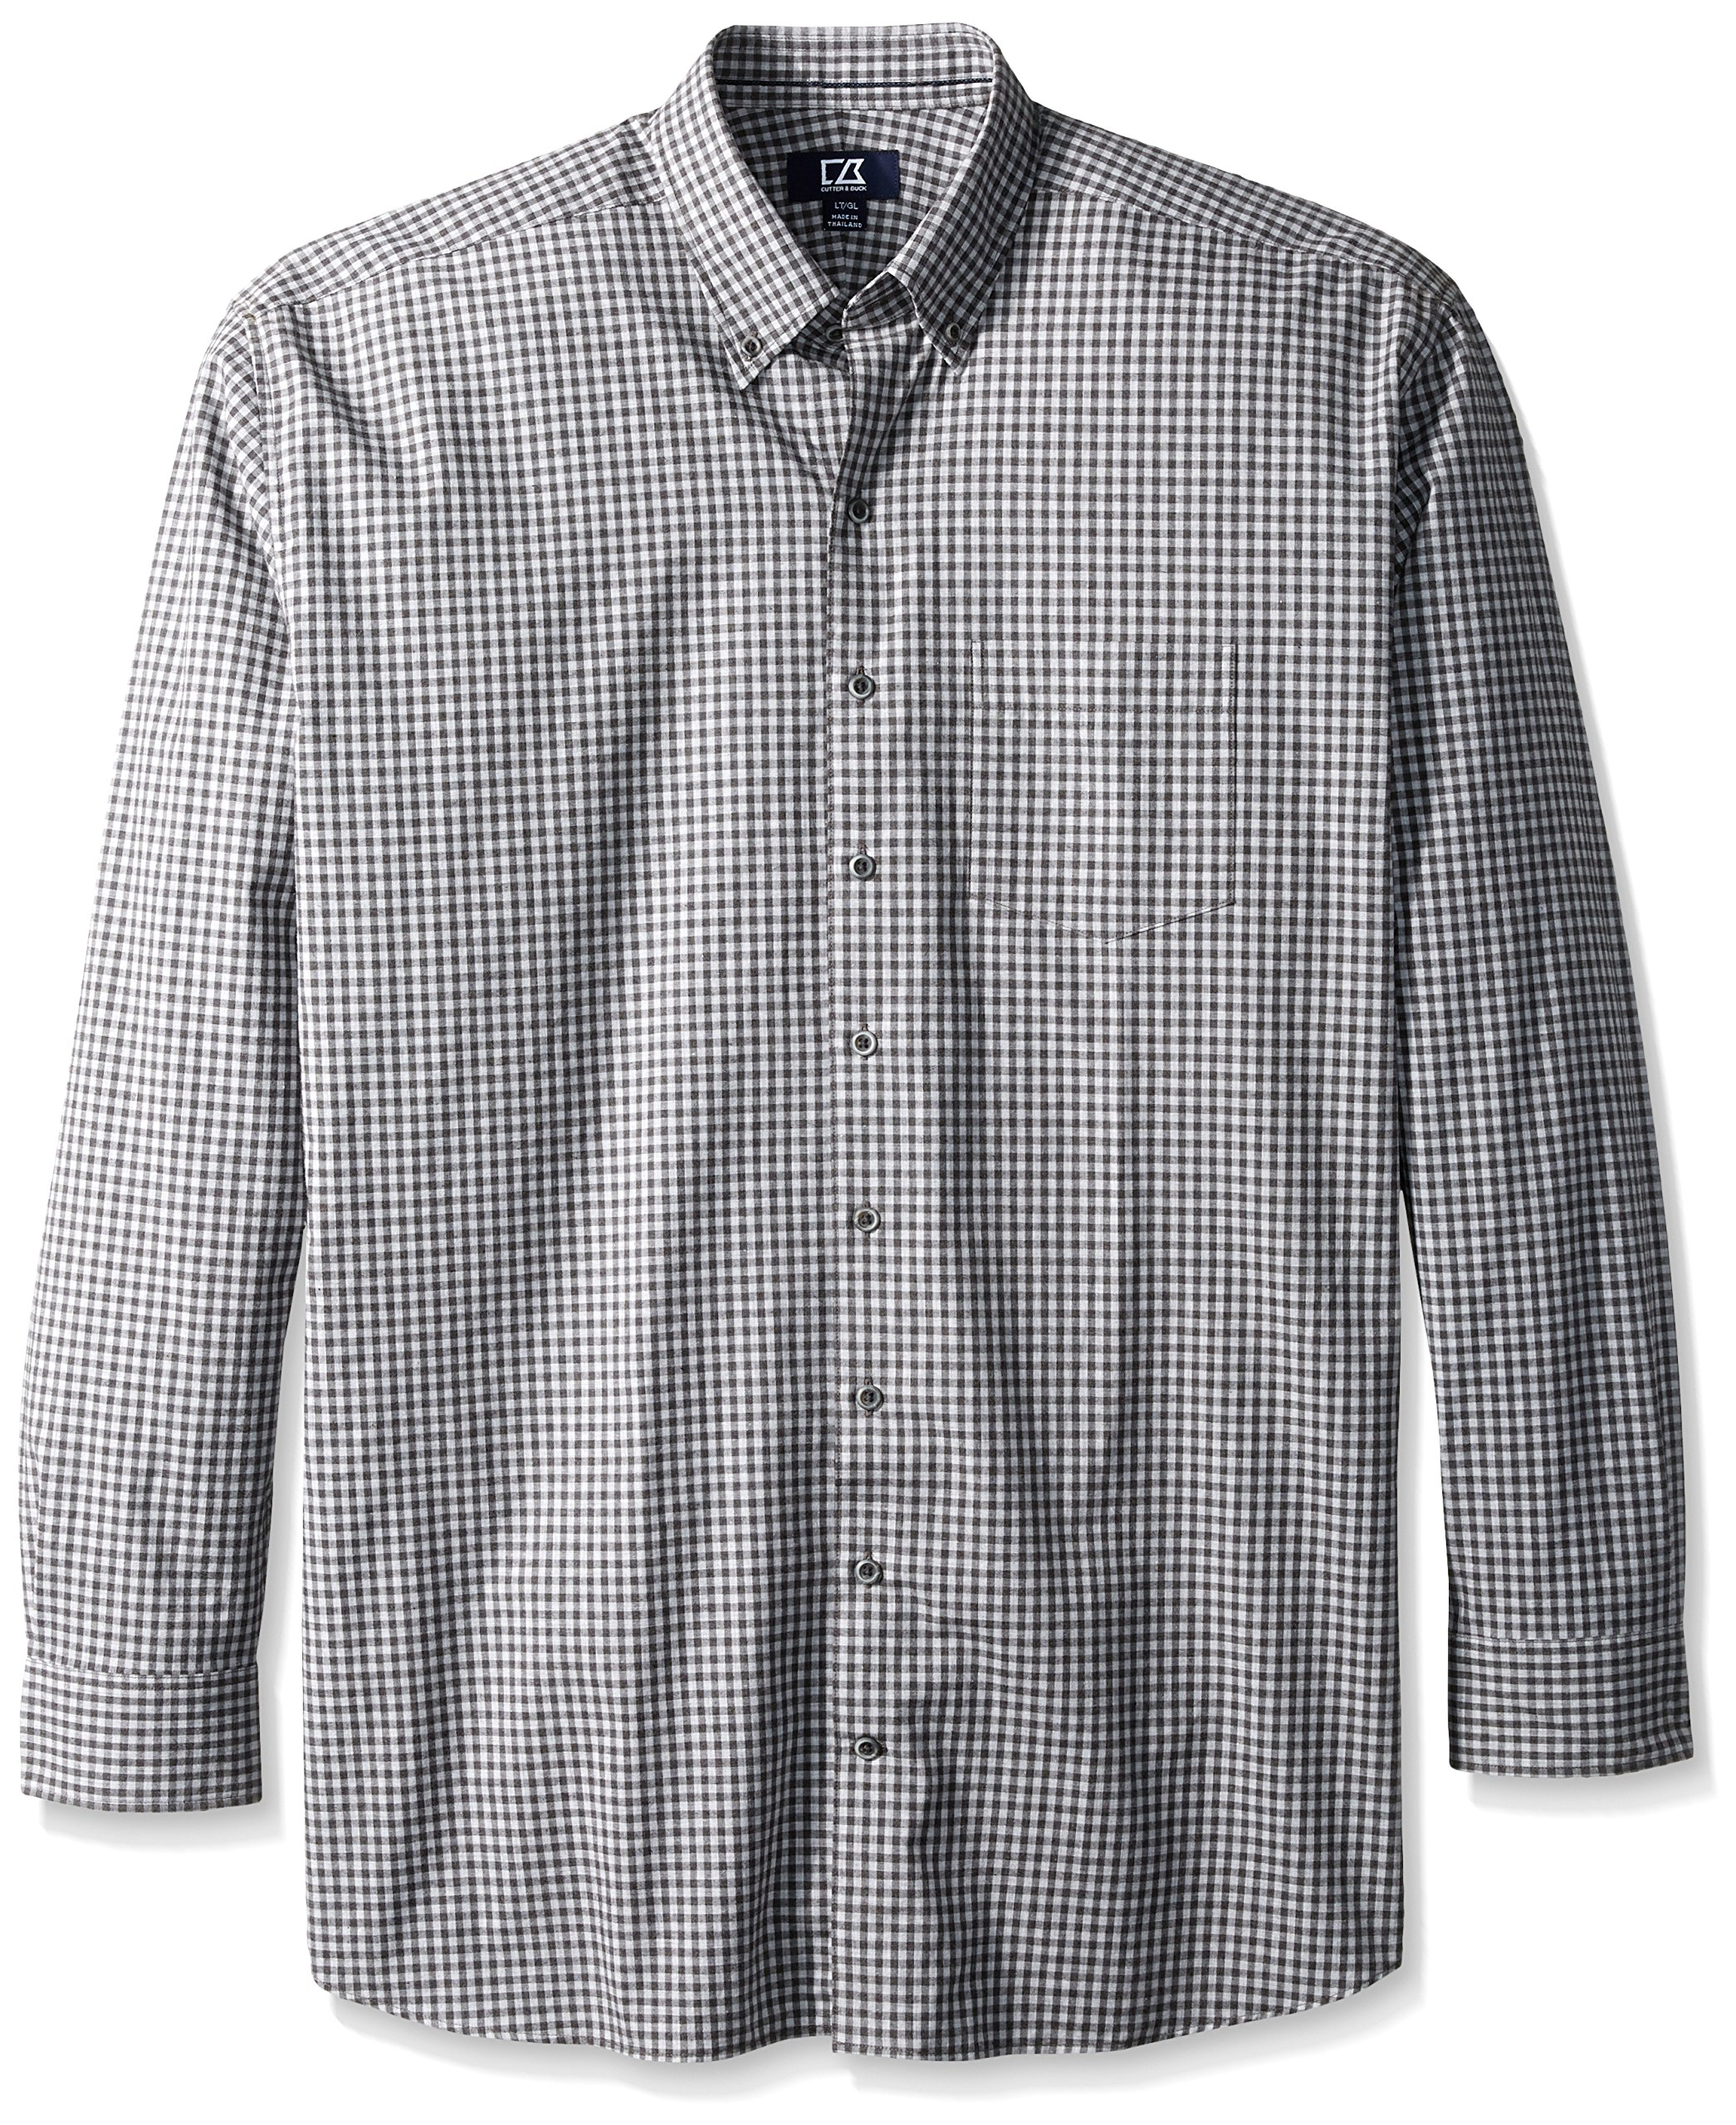 Cutter & Buck Men's Big Victoria Check, Multi, 3X/Tall